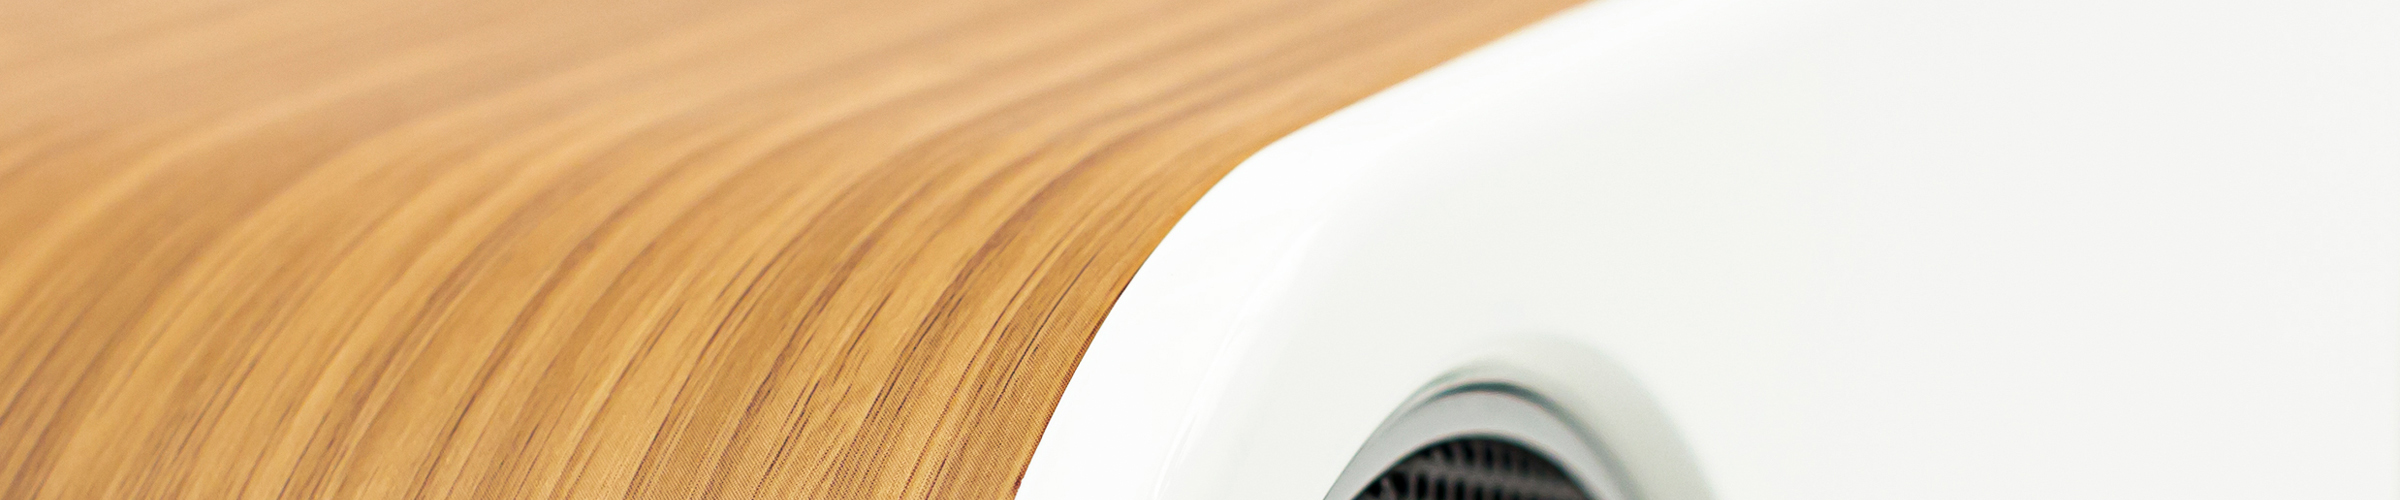 Fi30 bluetooth speaker cabinet wood design